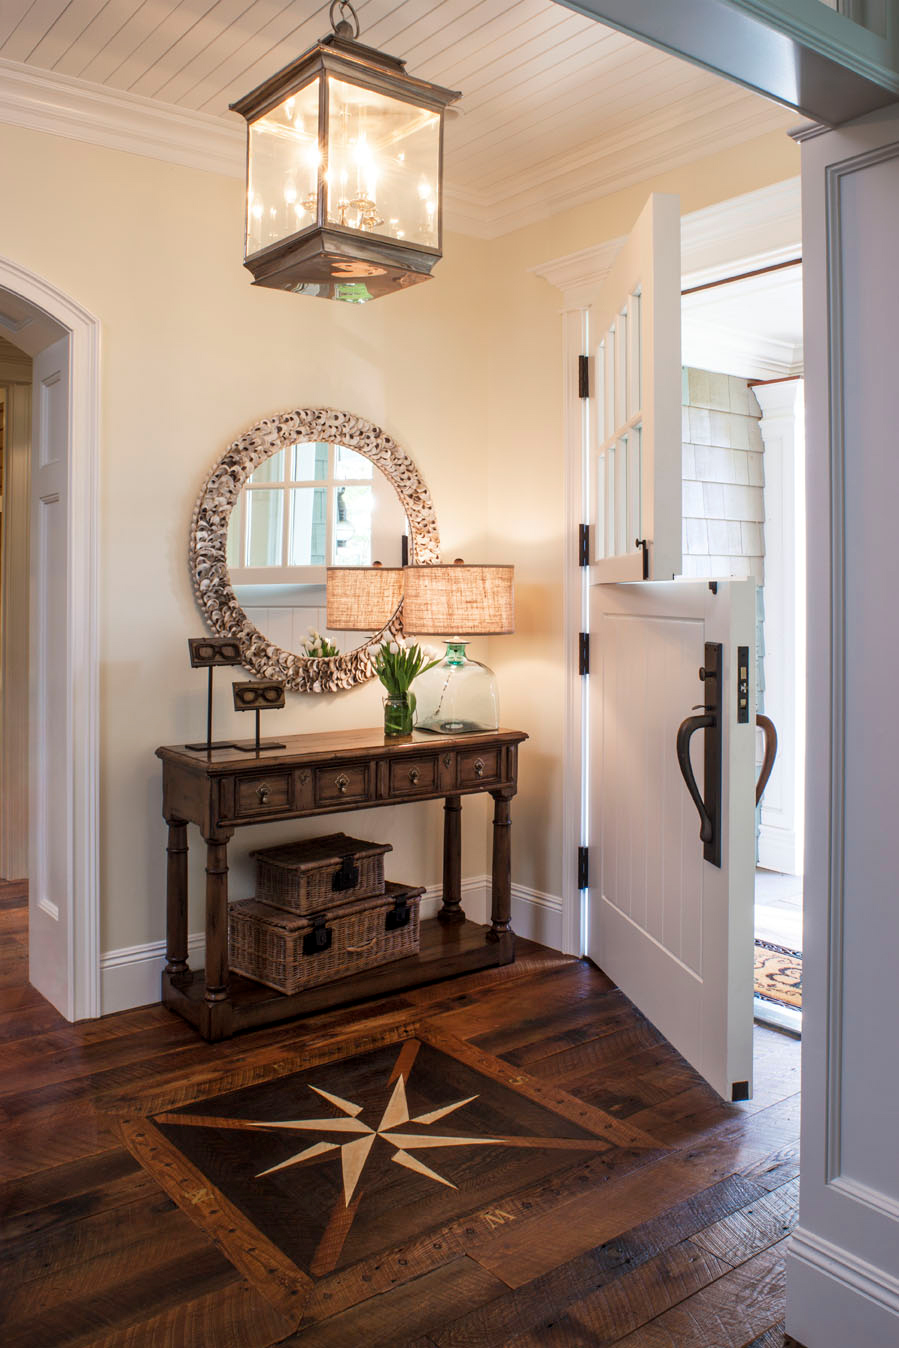 Foyer Room Ideas : Best rustic entryway decorating ideas and designs for